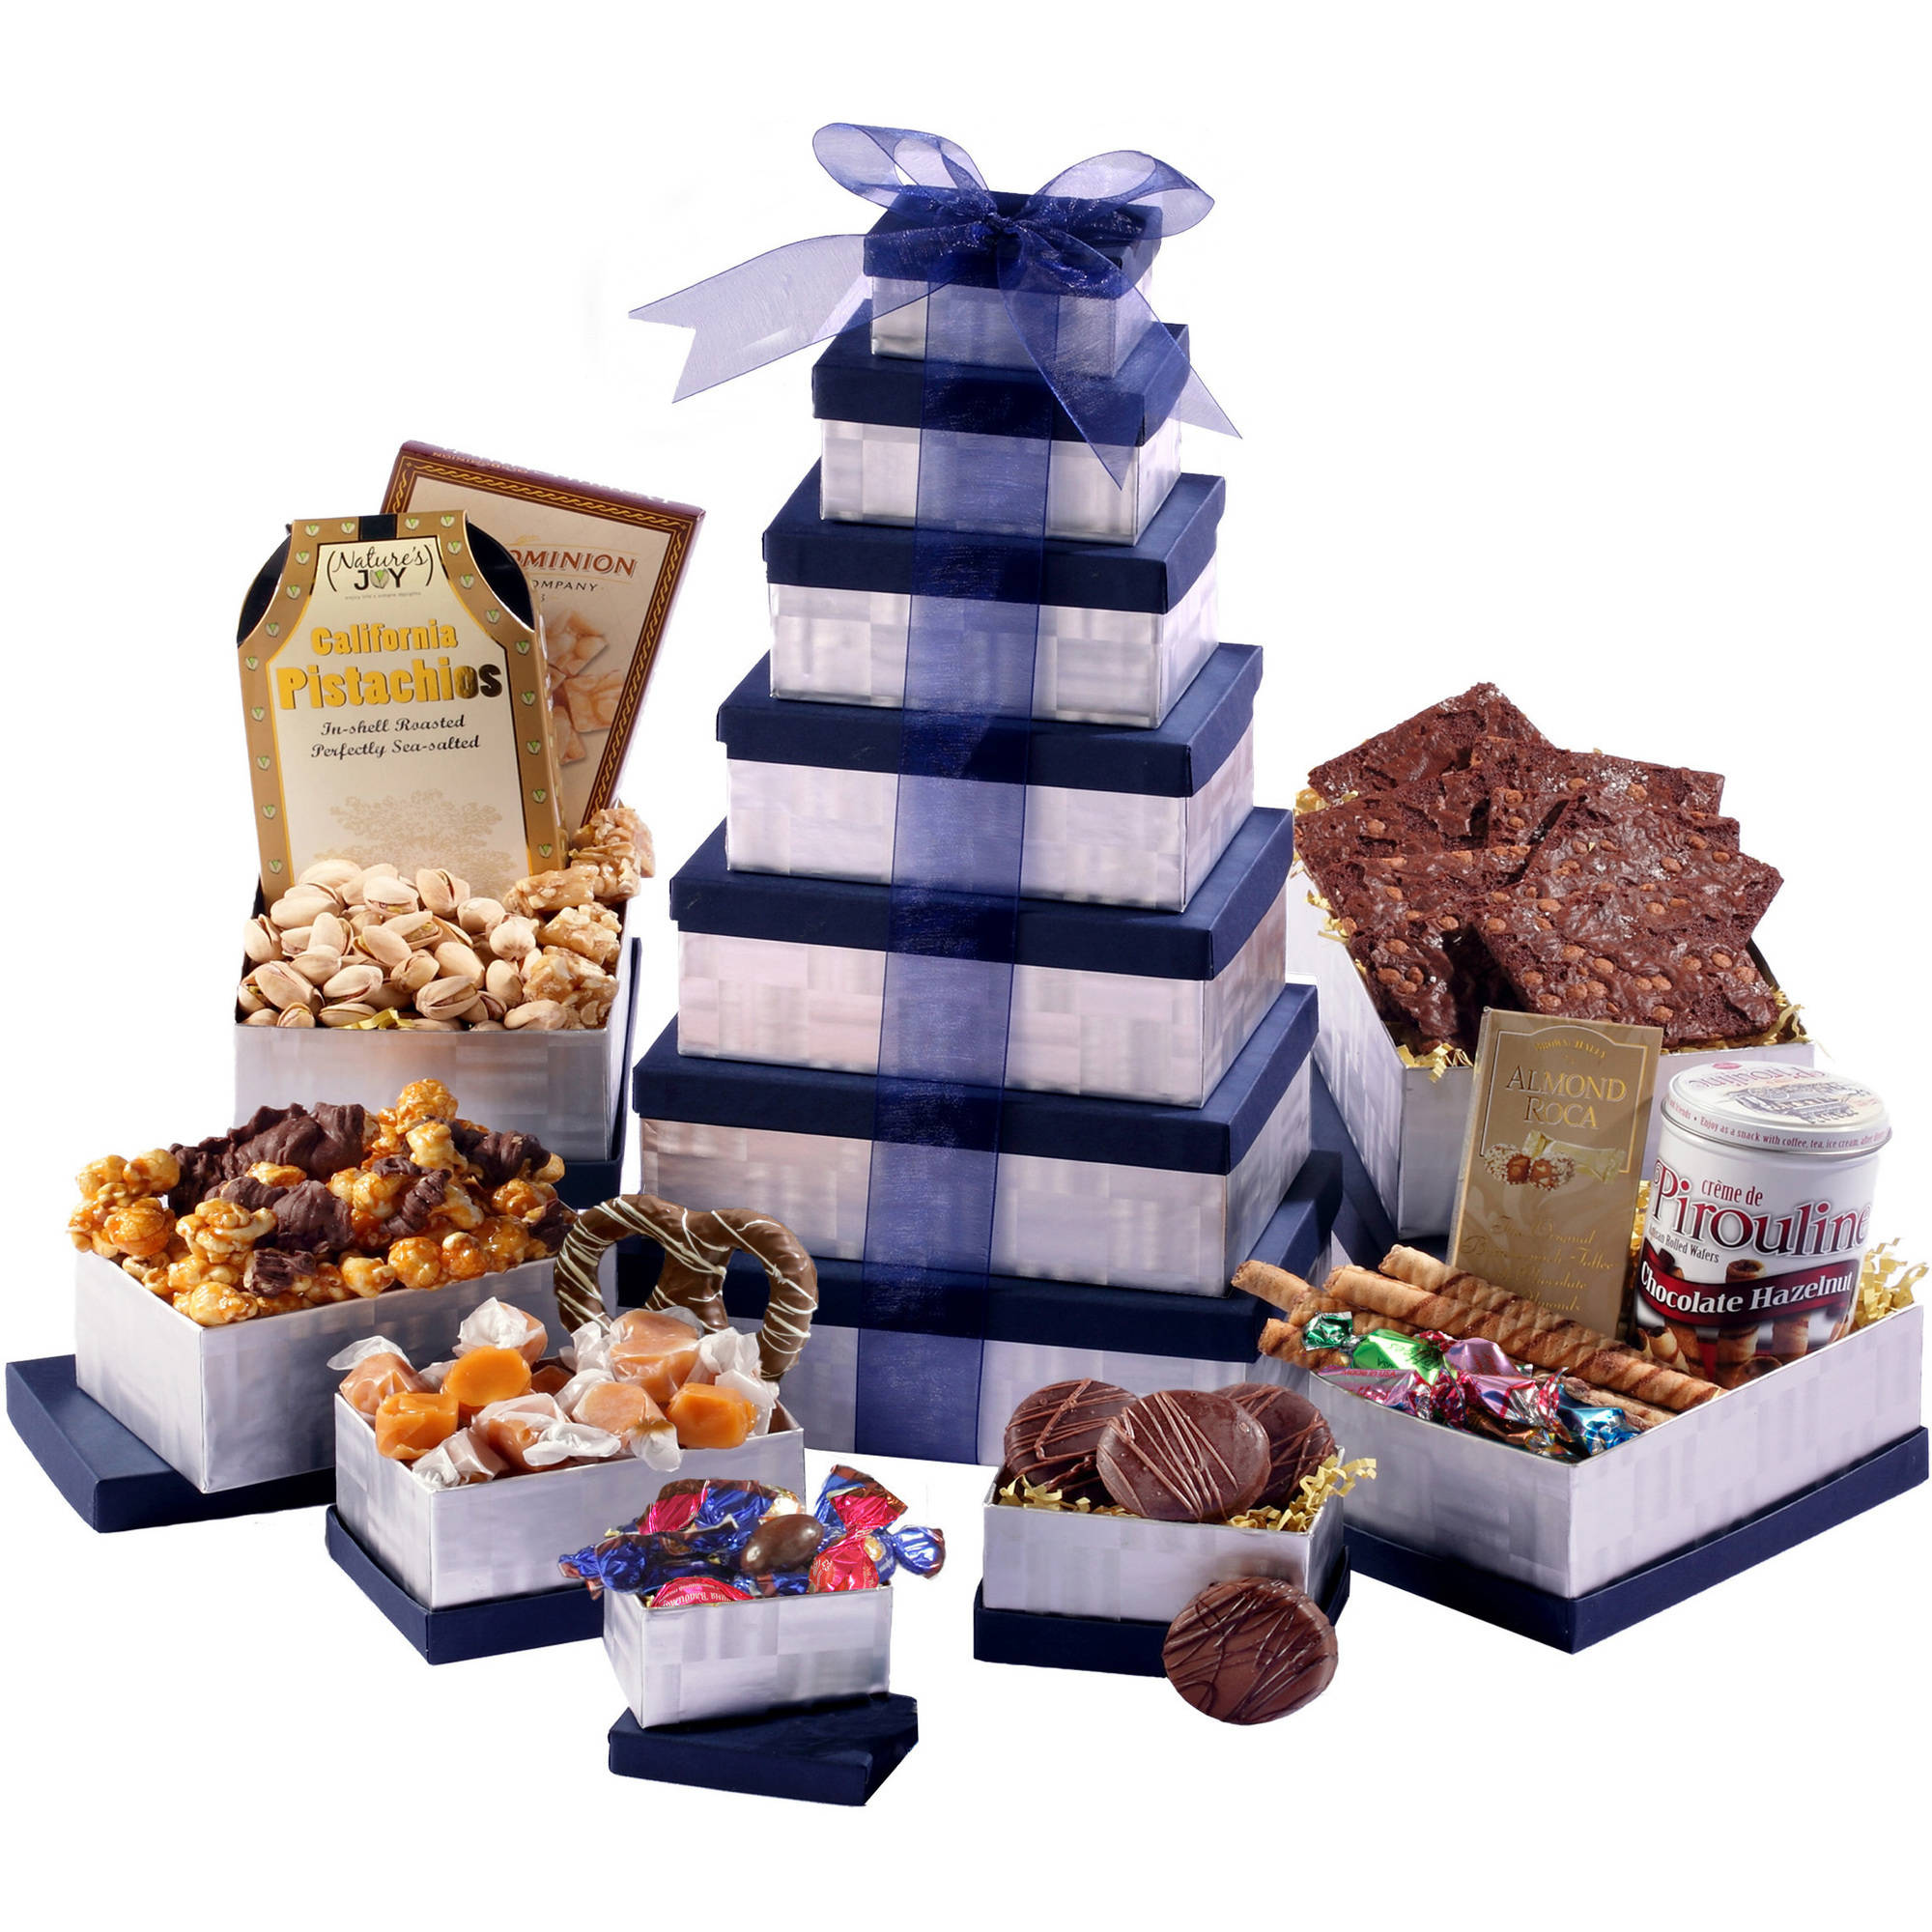 Broadway Basketeers Any Occasion Thinking of You Chocolate Delights Gift Basket Tower, 10 pc